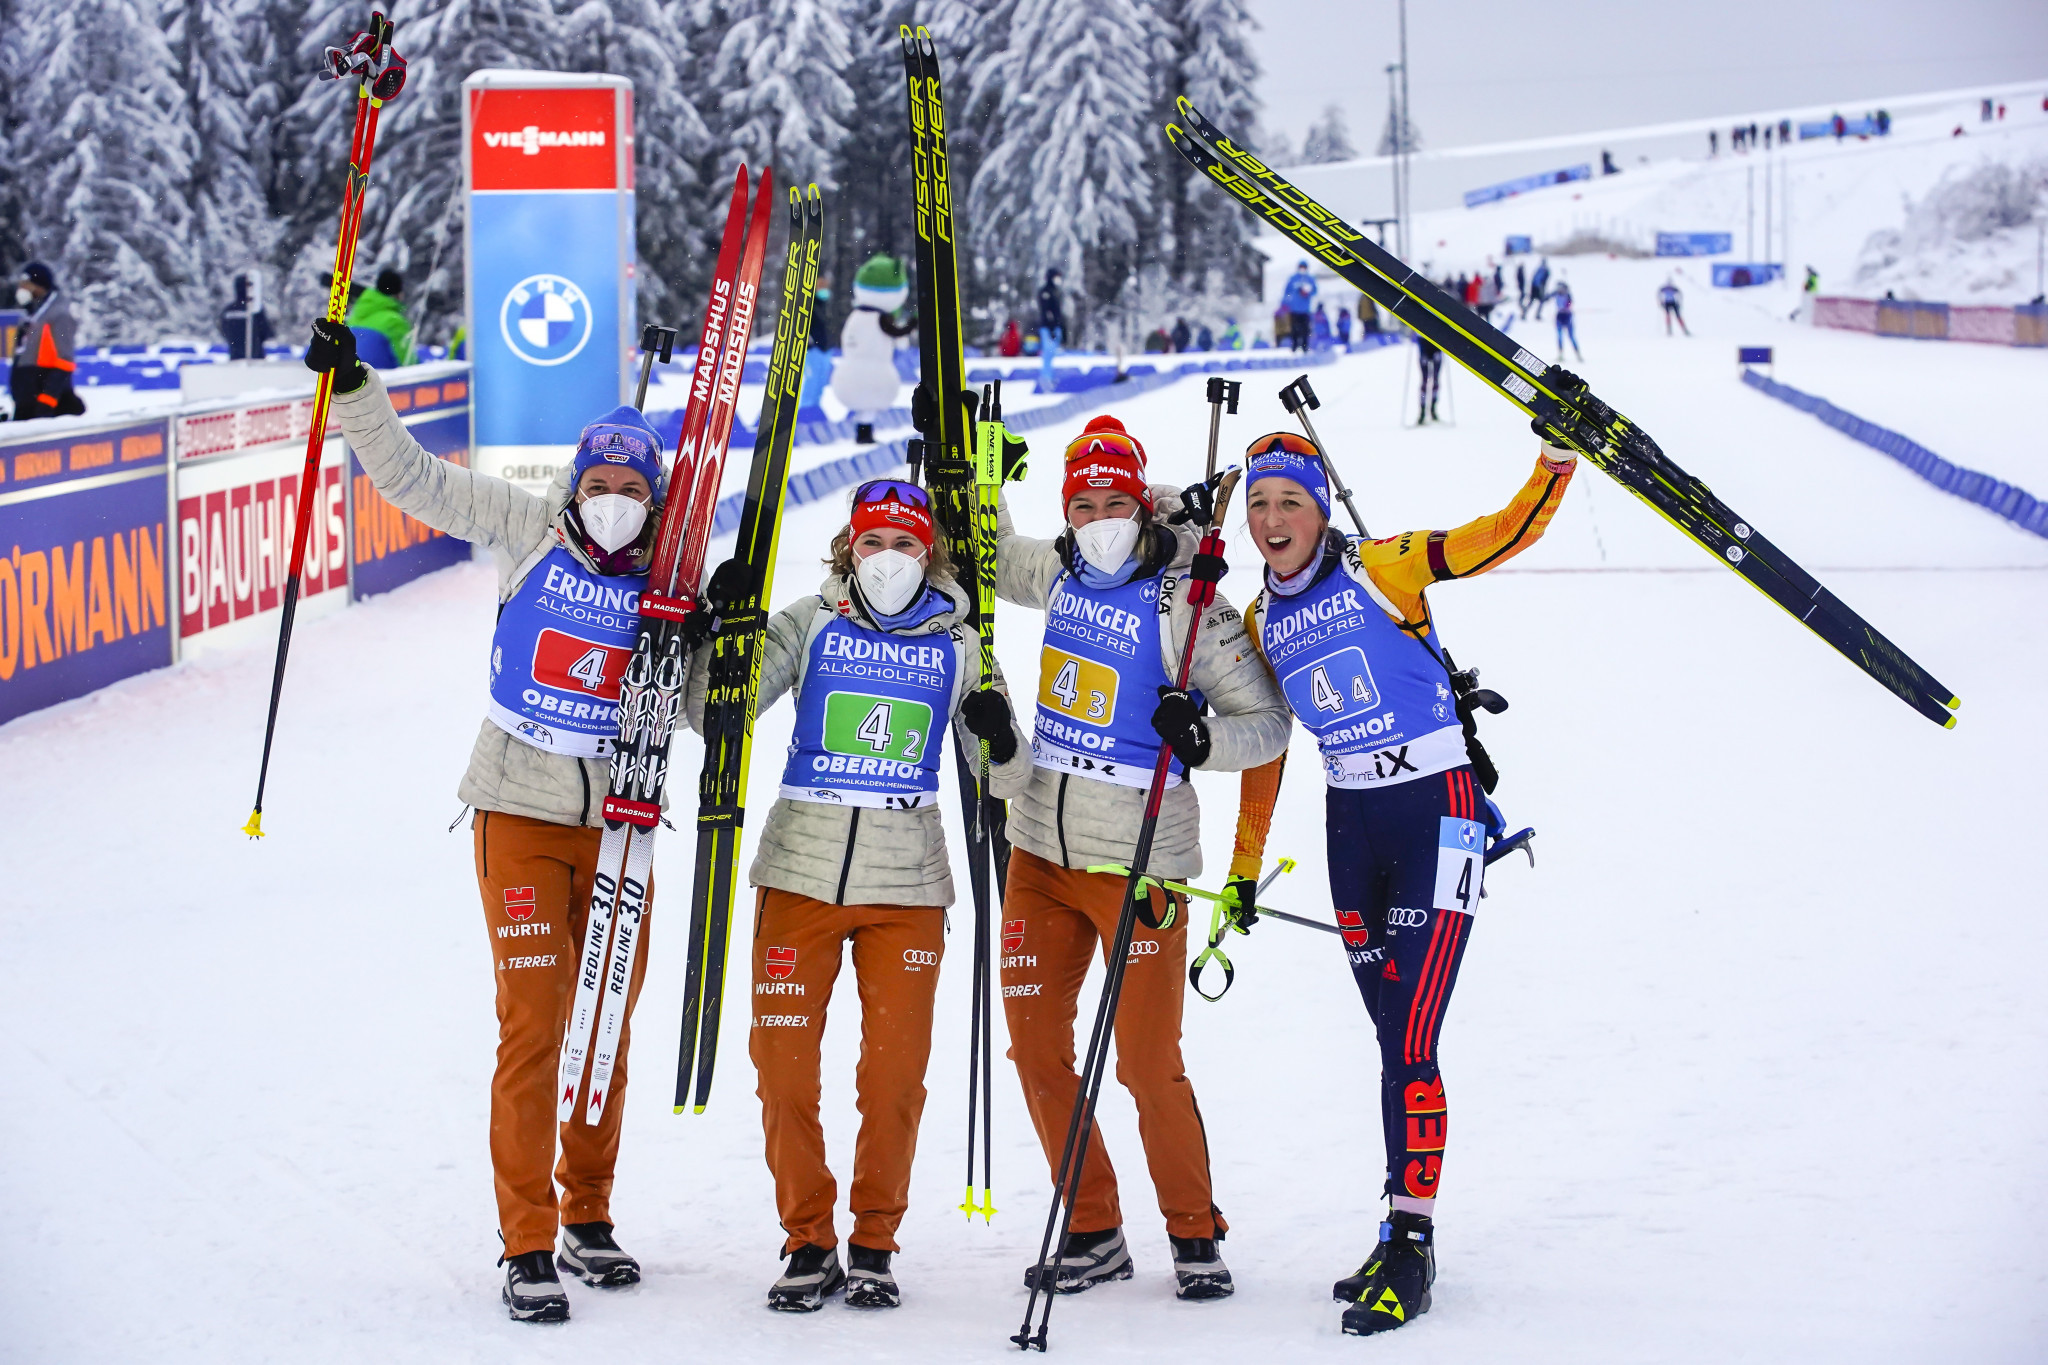 Germany triumph in women's relay event at IBU World Cup in Oberhof